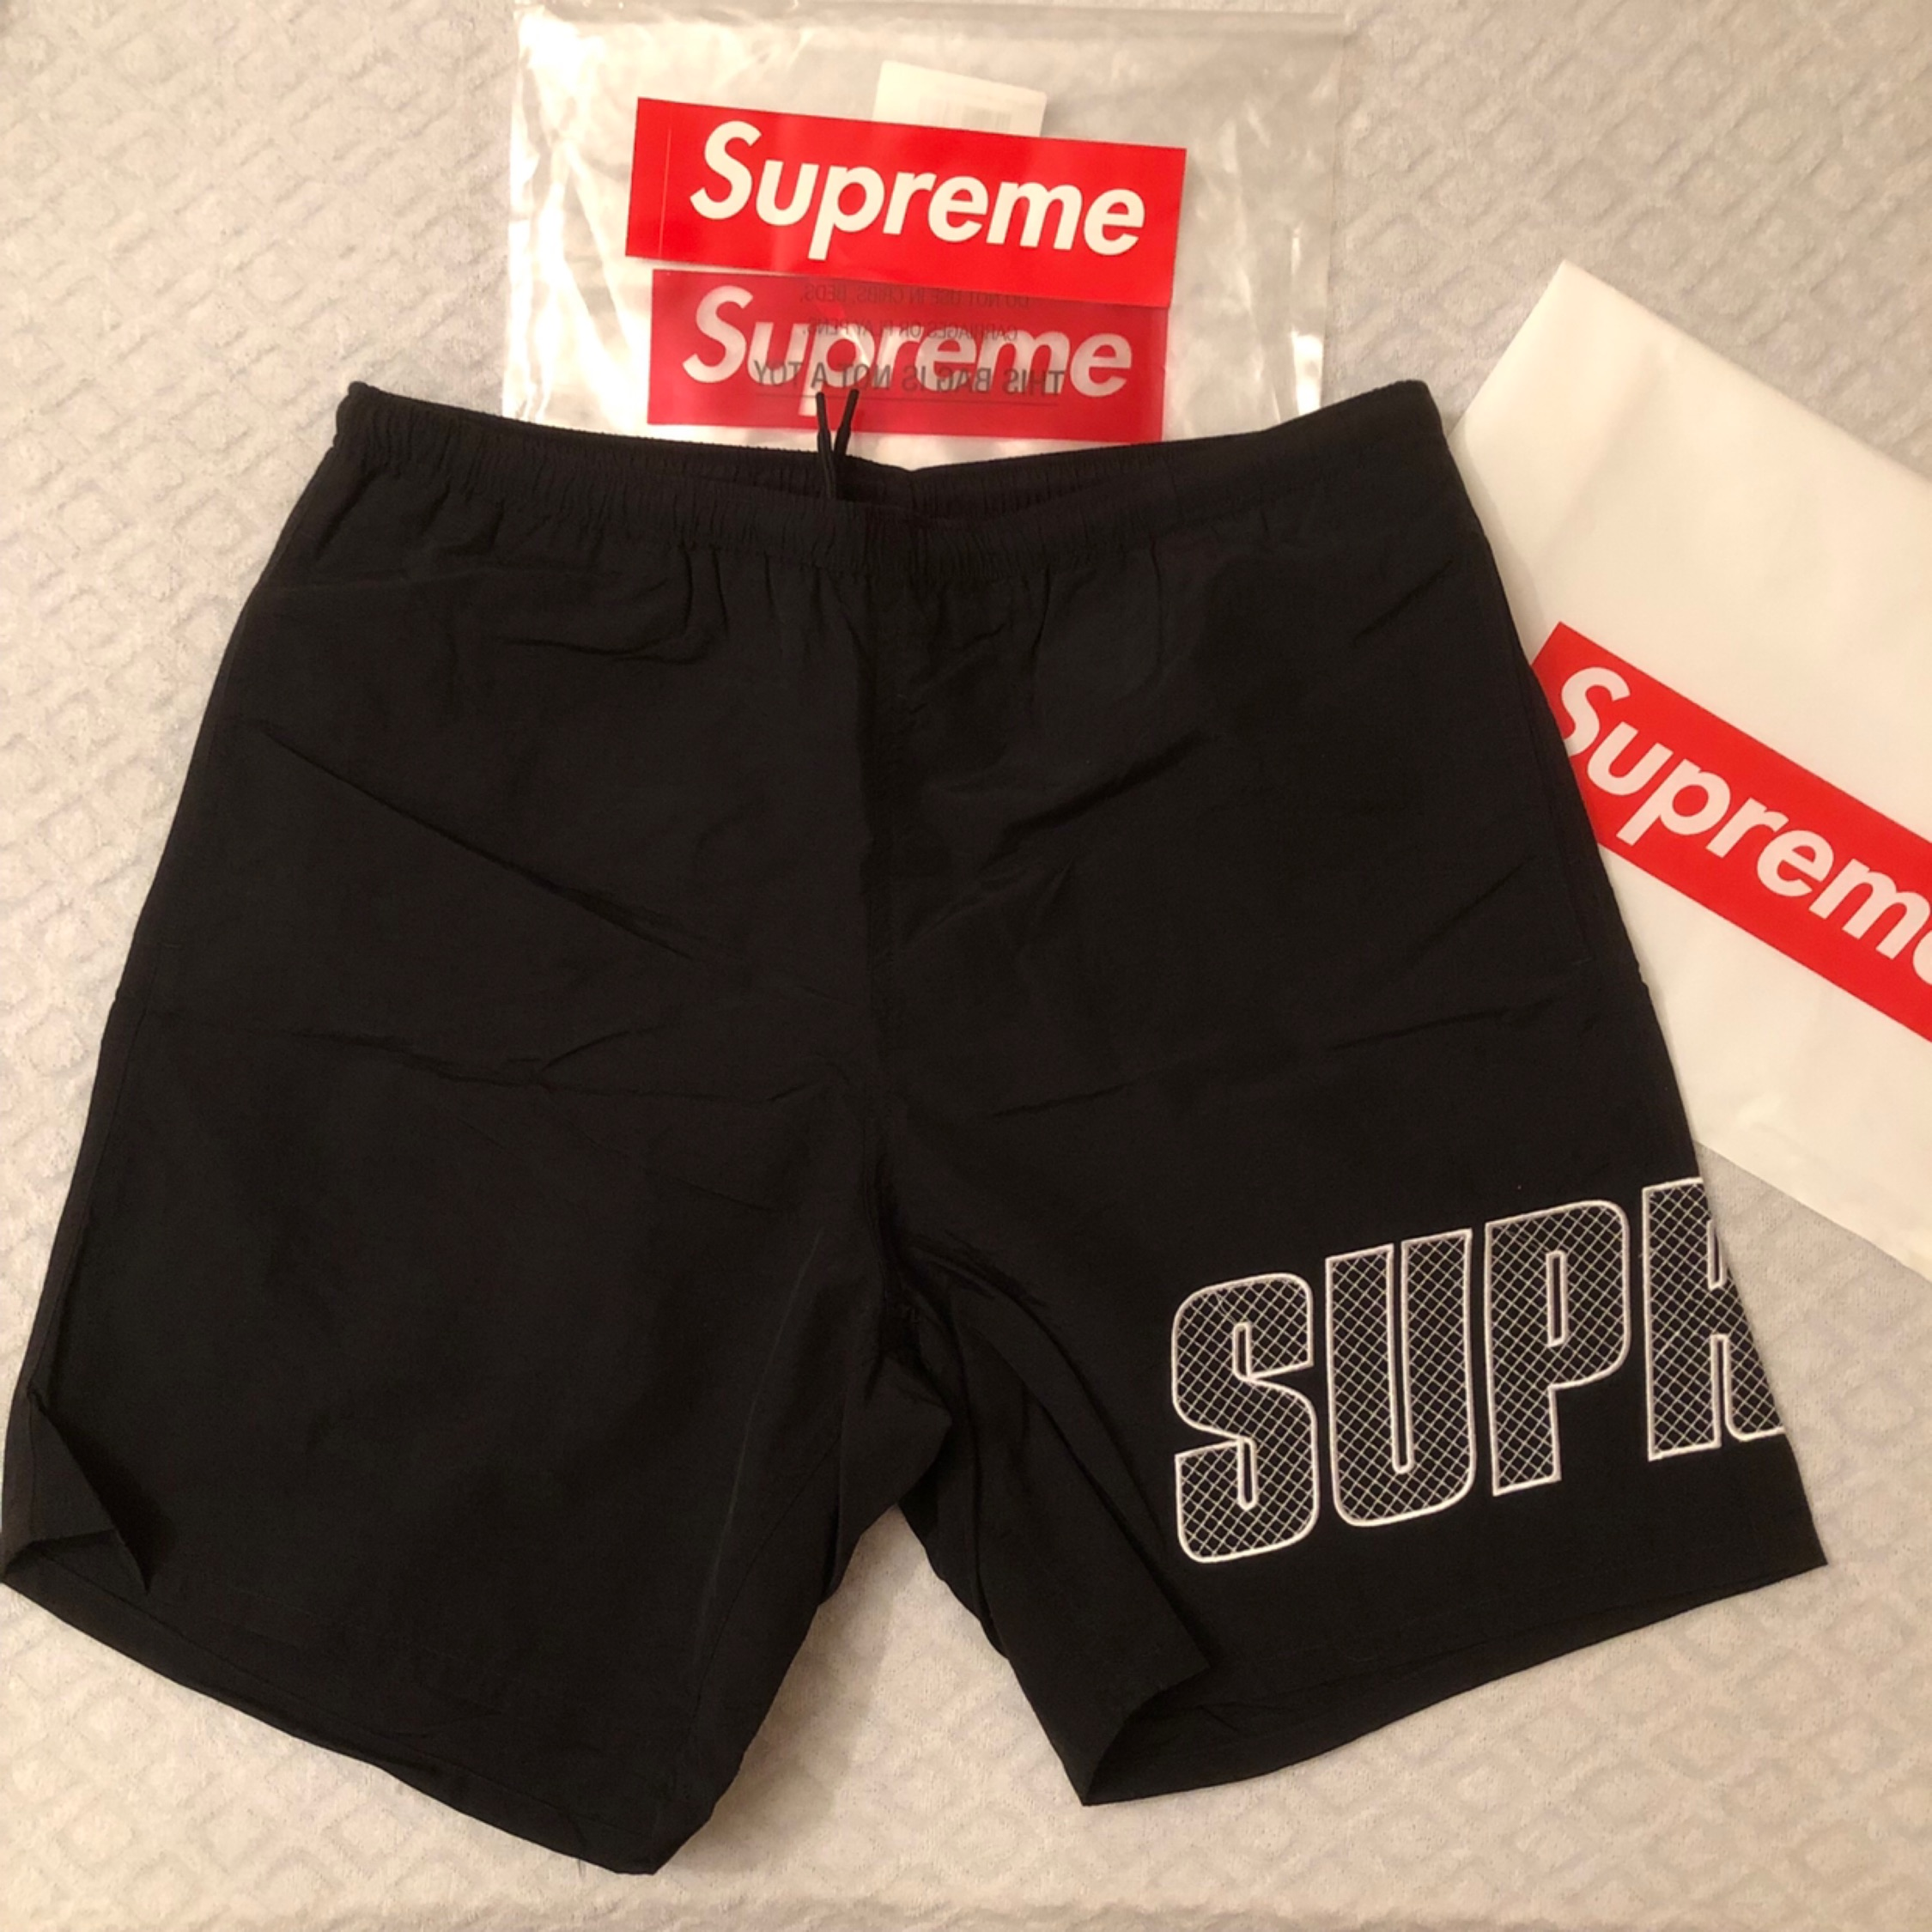 Costume Supreme Water Short Ss19